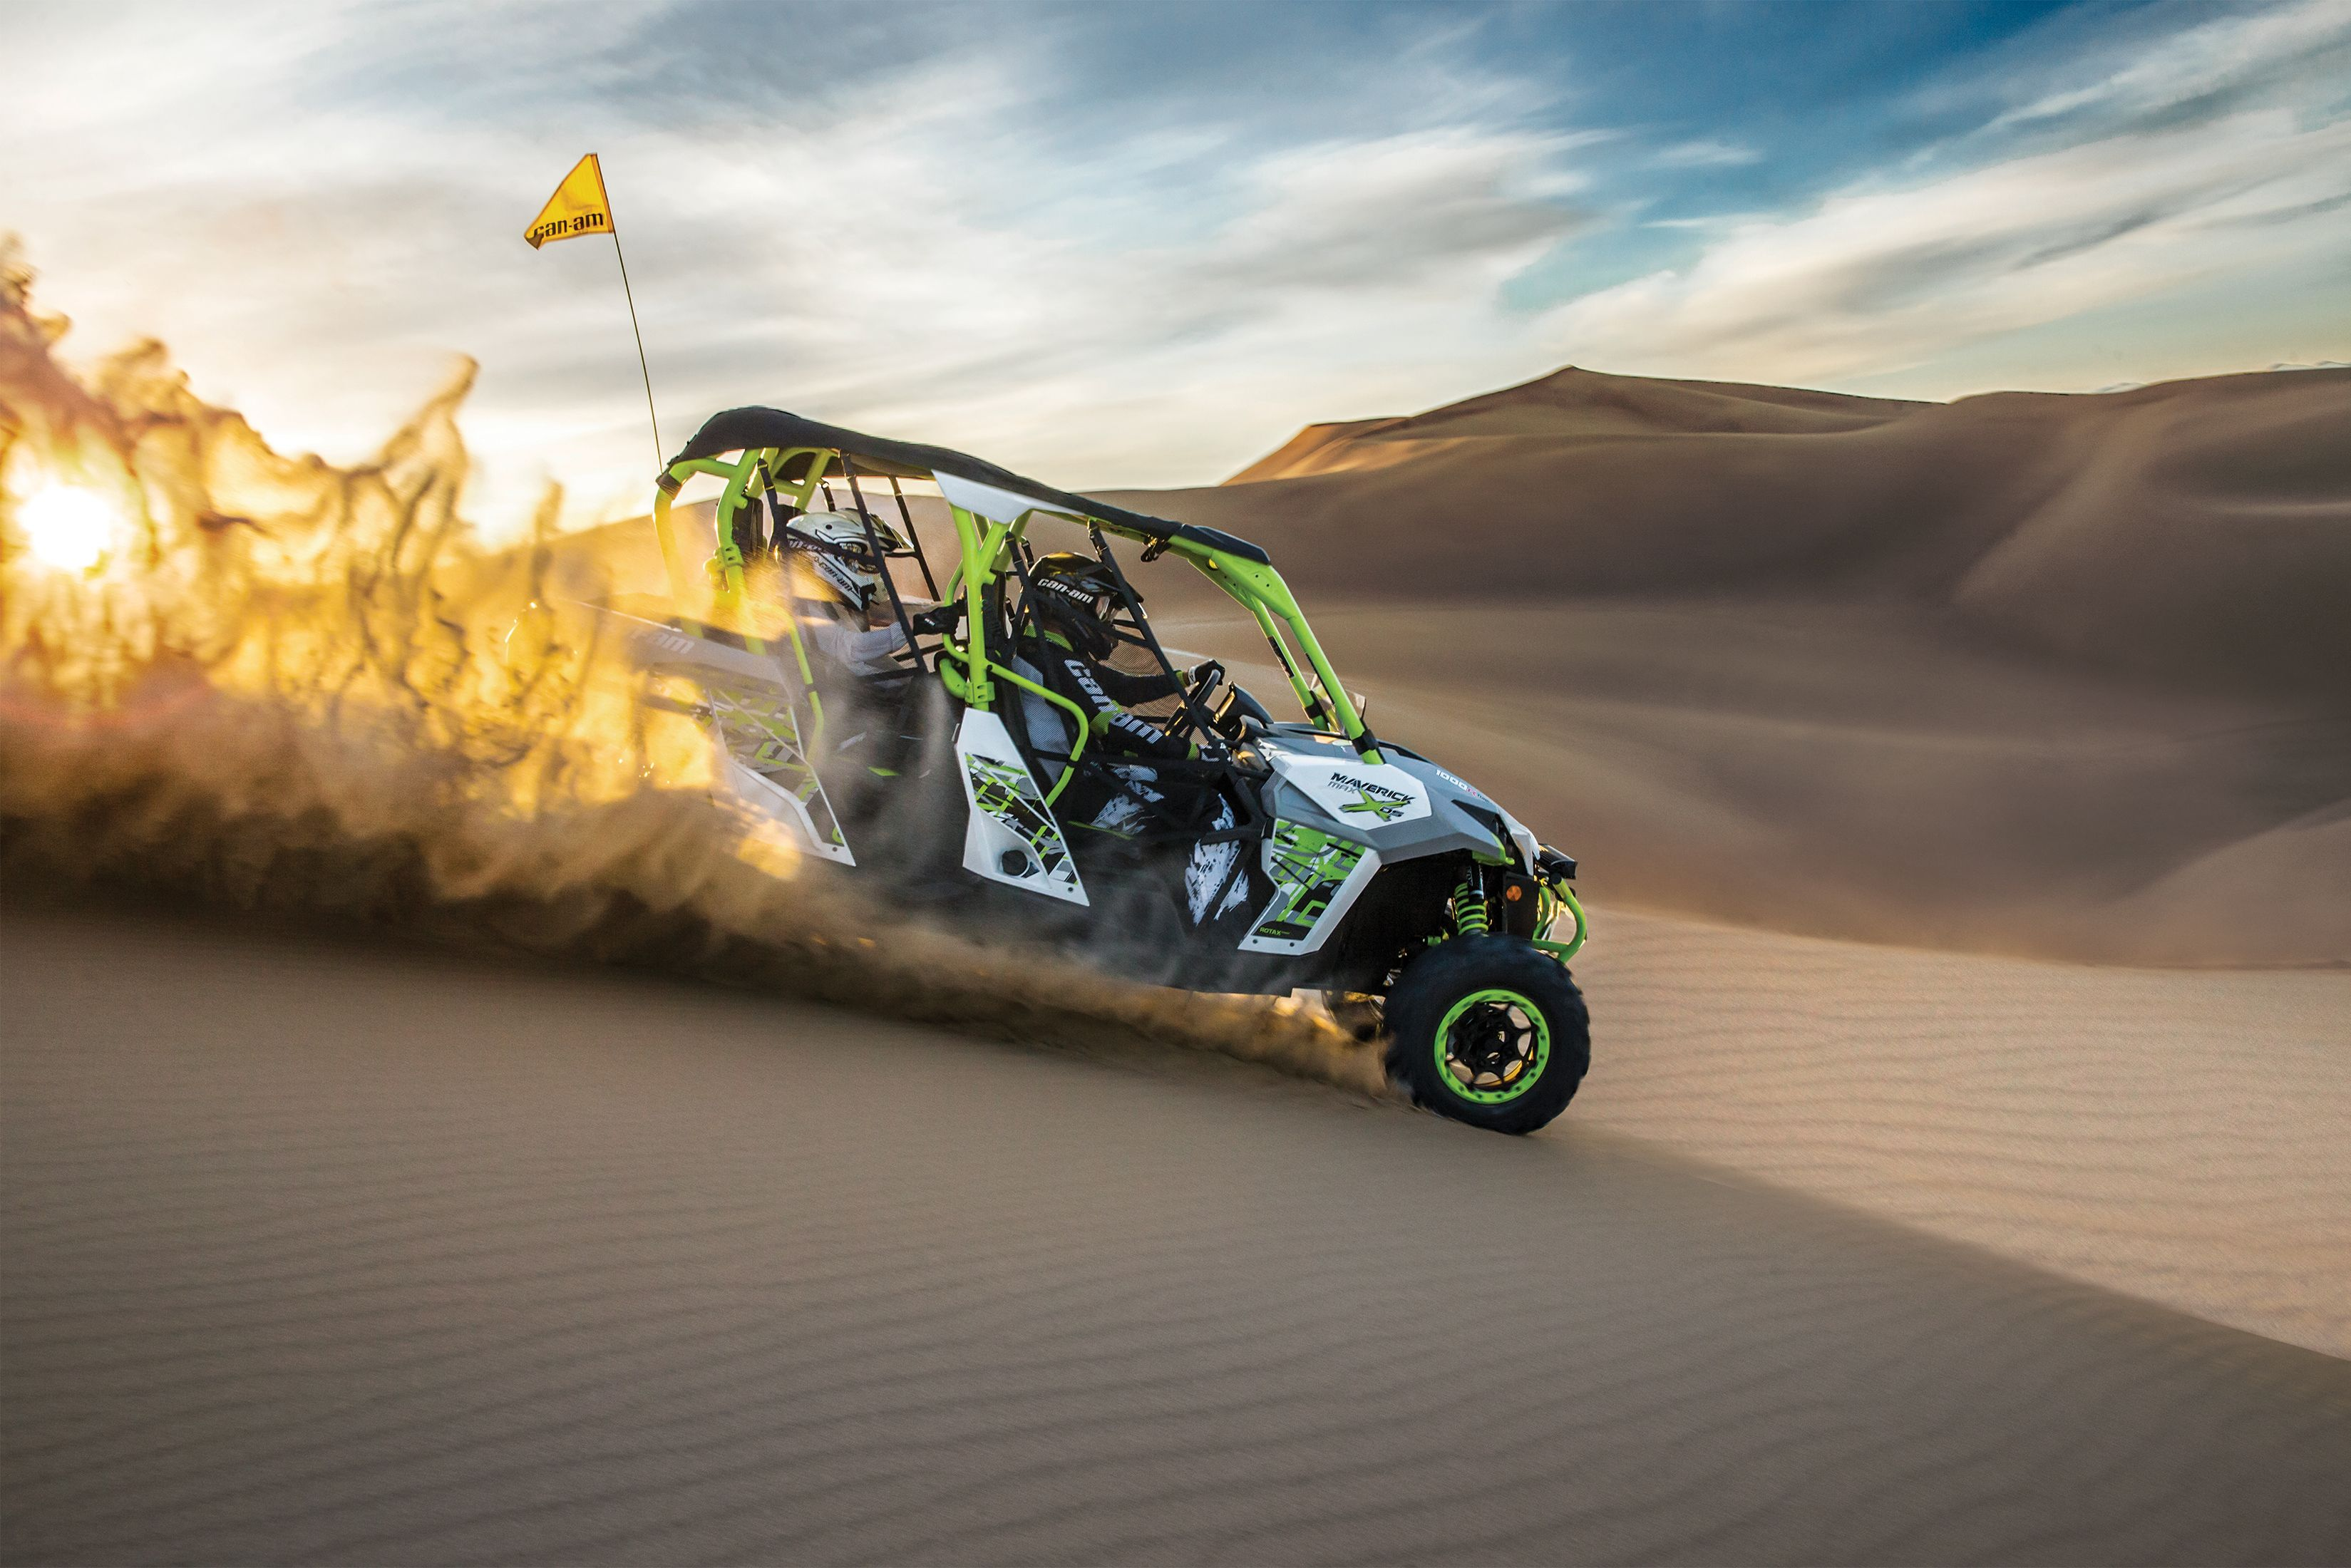 The all new Maverick X ds enables you to lead the pack with the most